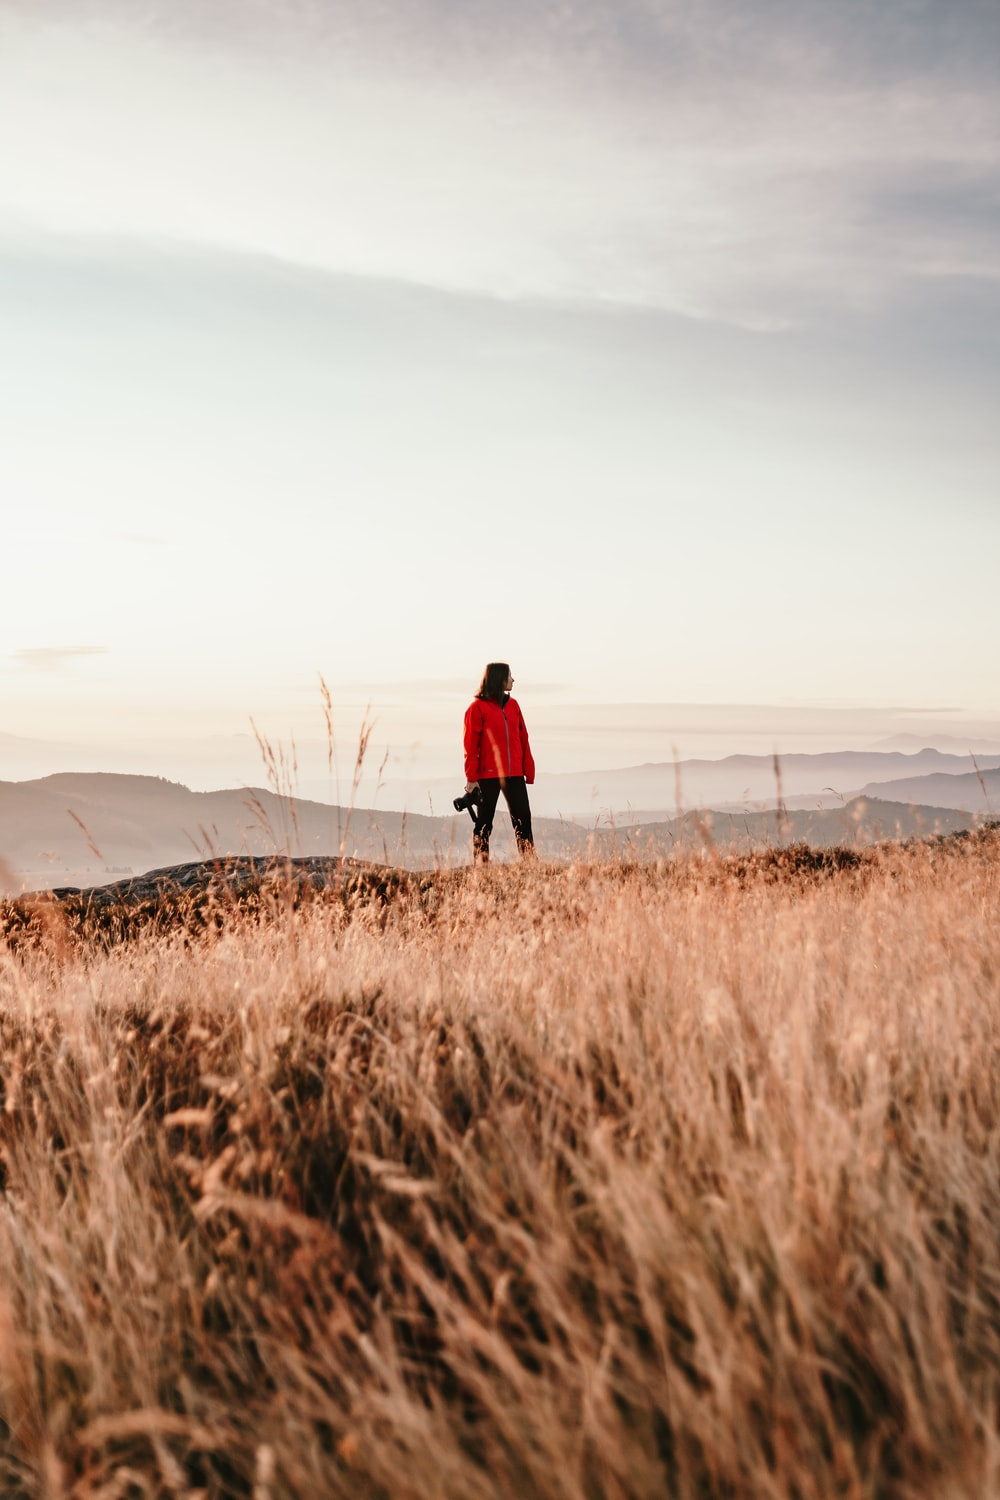 man in red jacket walking on brown grass field during daytime